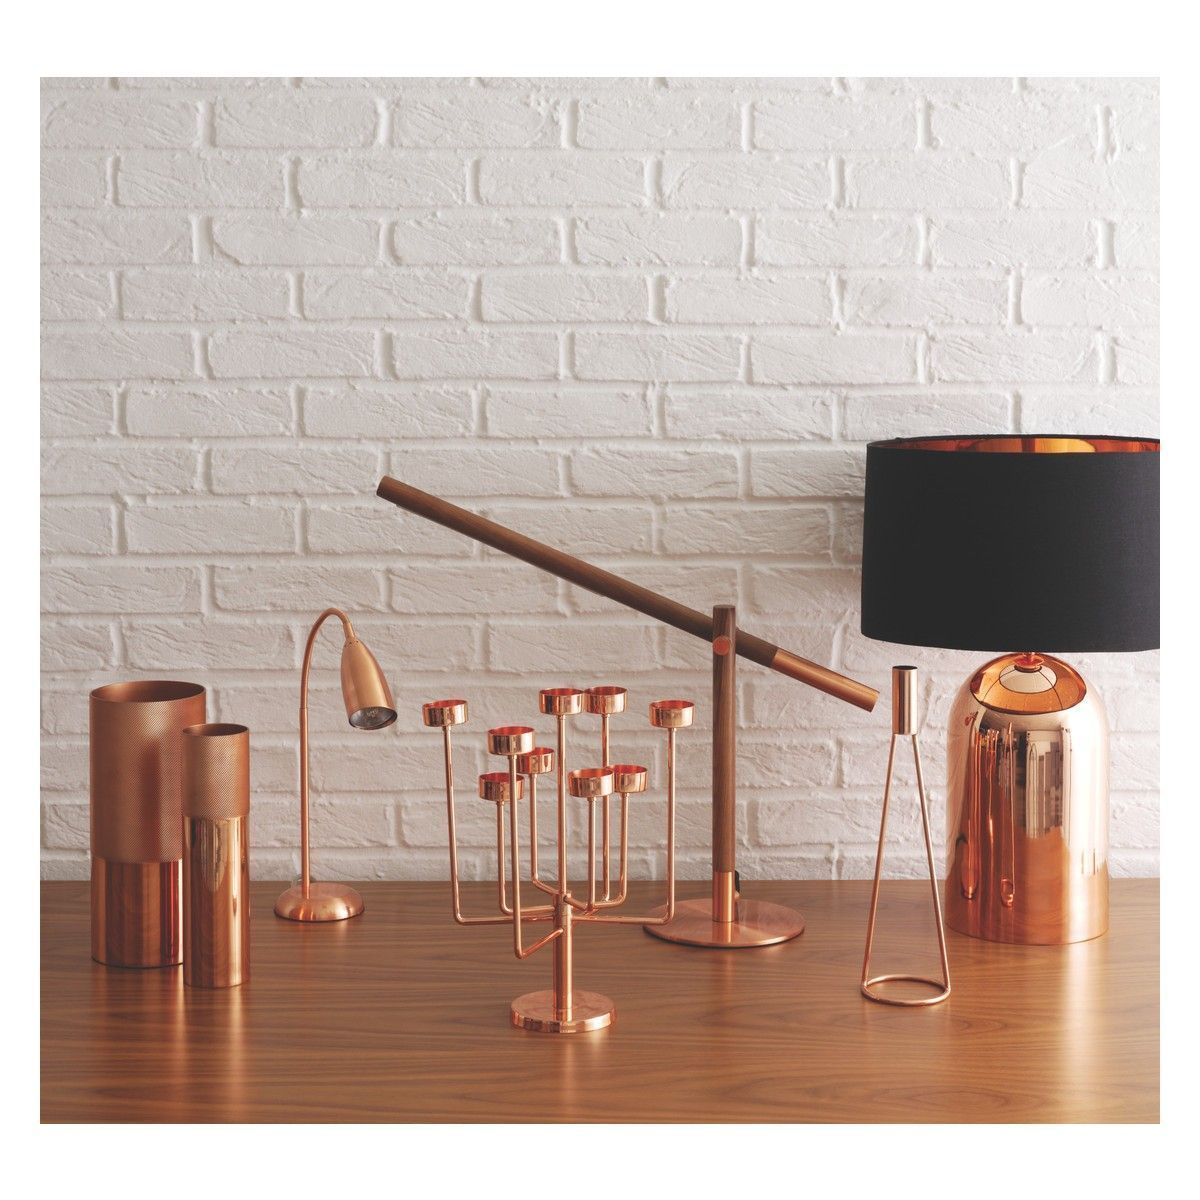 A Comprehensive Overview On Home Decoration In 2020 Diy Table Lamp Copper Table Lamp Lamp